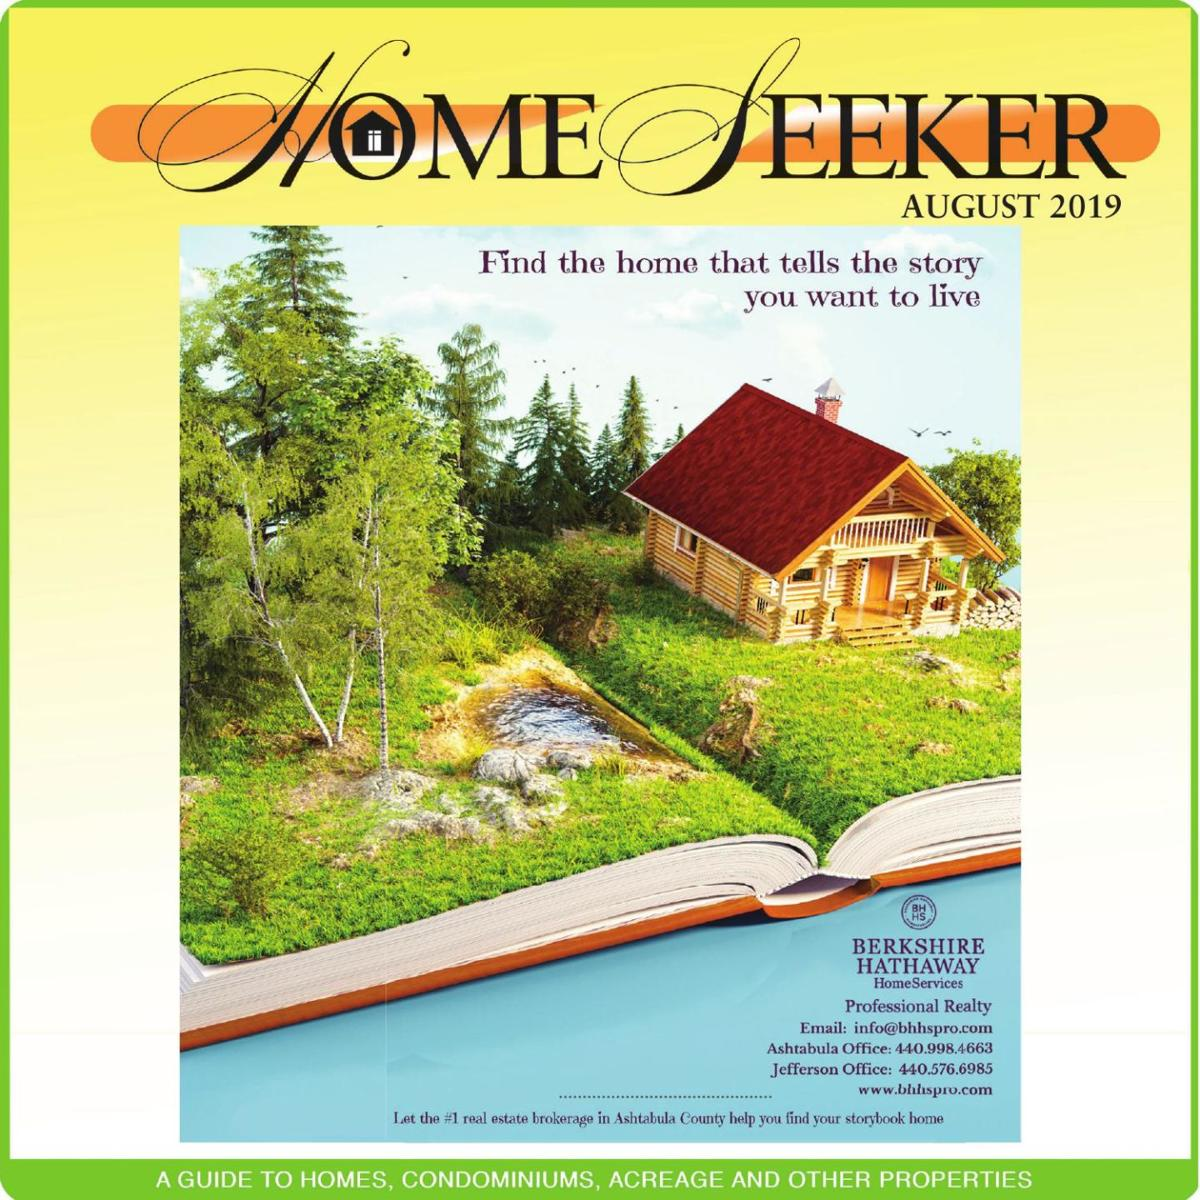 HOMESEEKER - AUGUST 2019